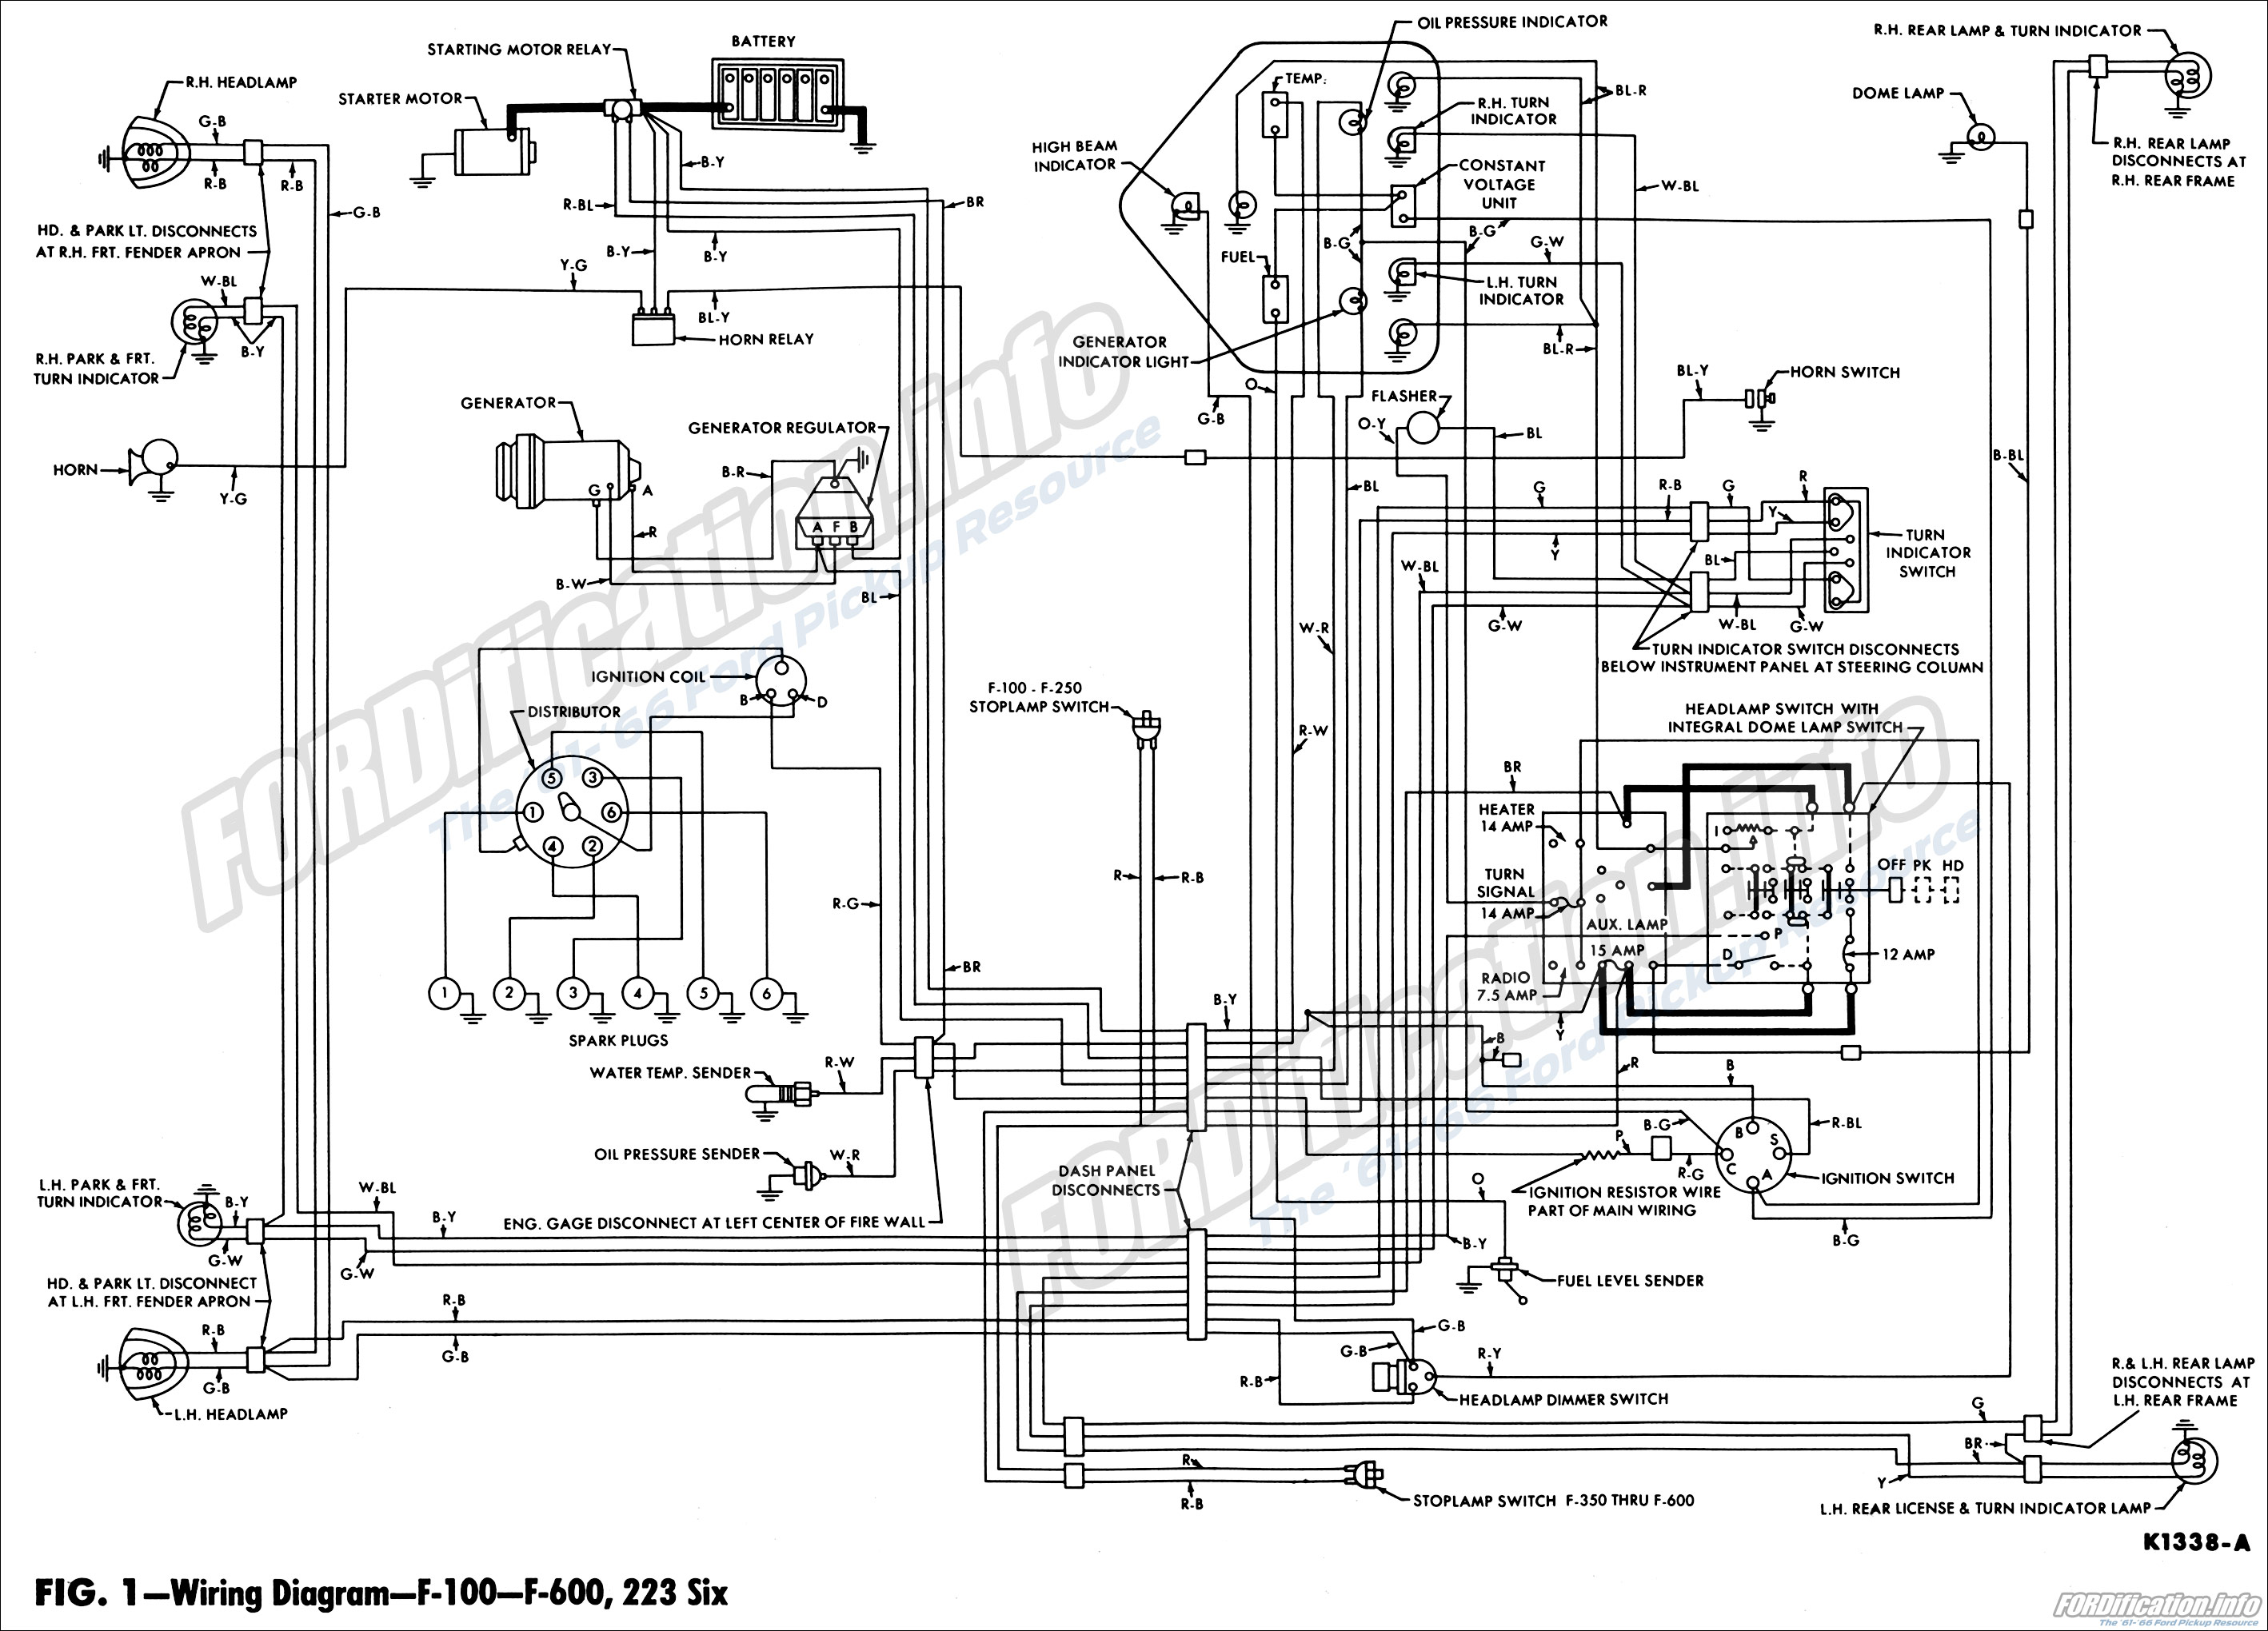 1962 Ford Truck Wiring Diagrams - FORDification.info - The ...